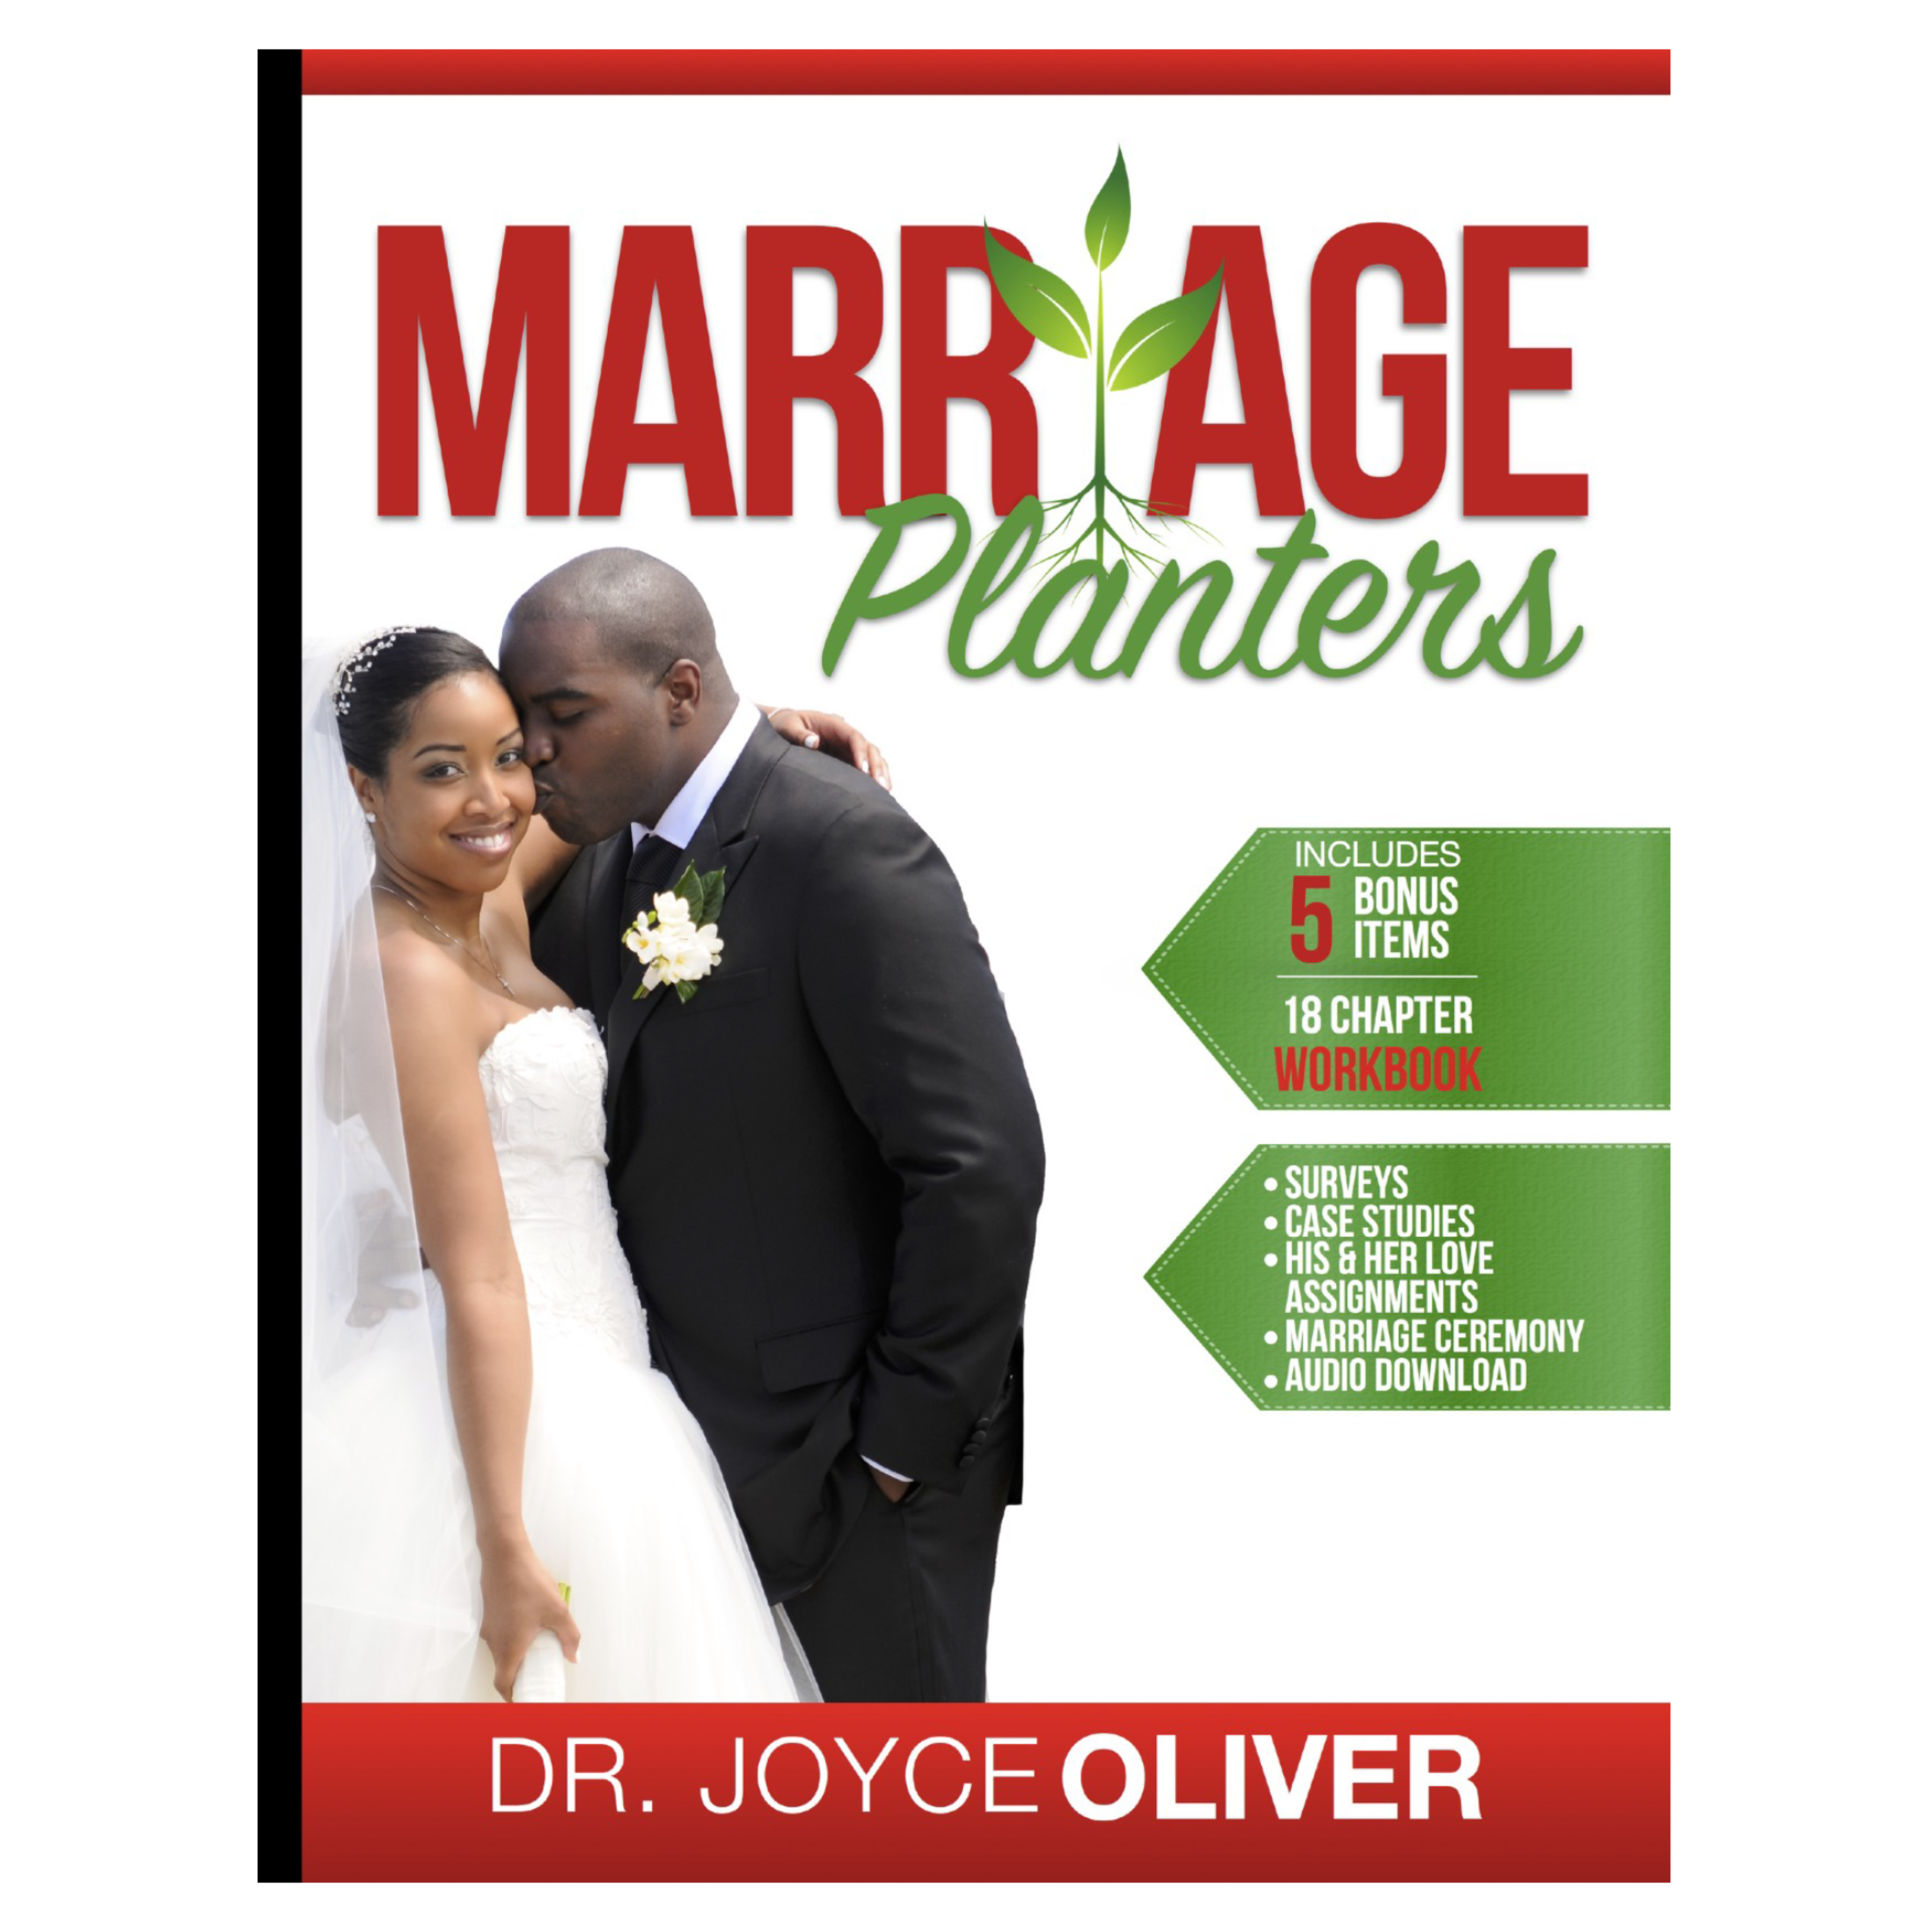 Marriage Planters - PDF